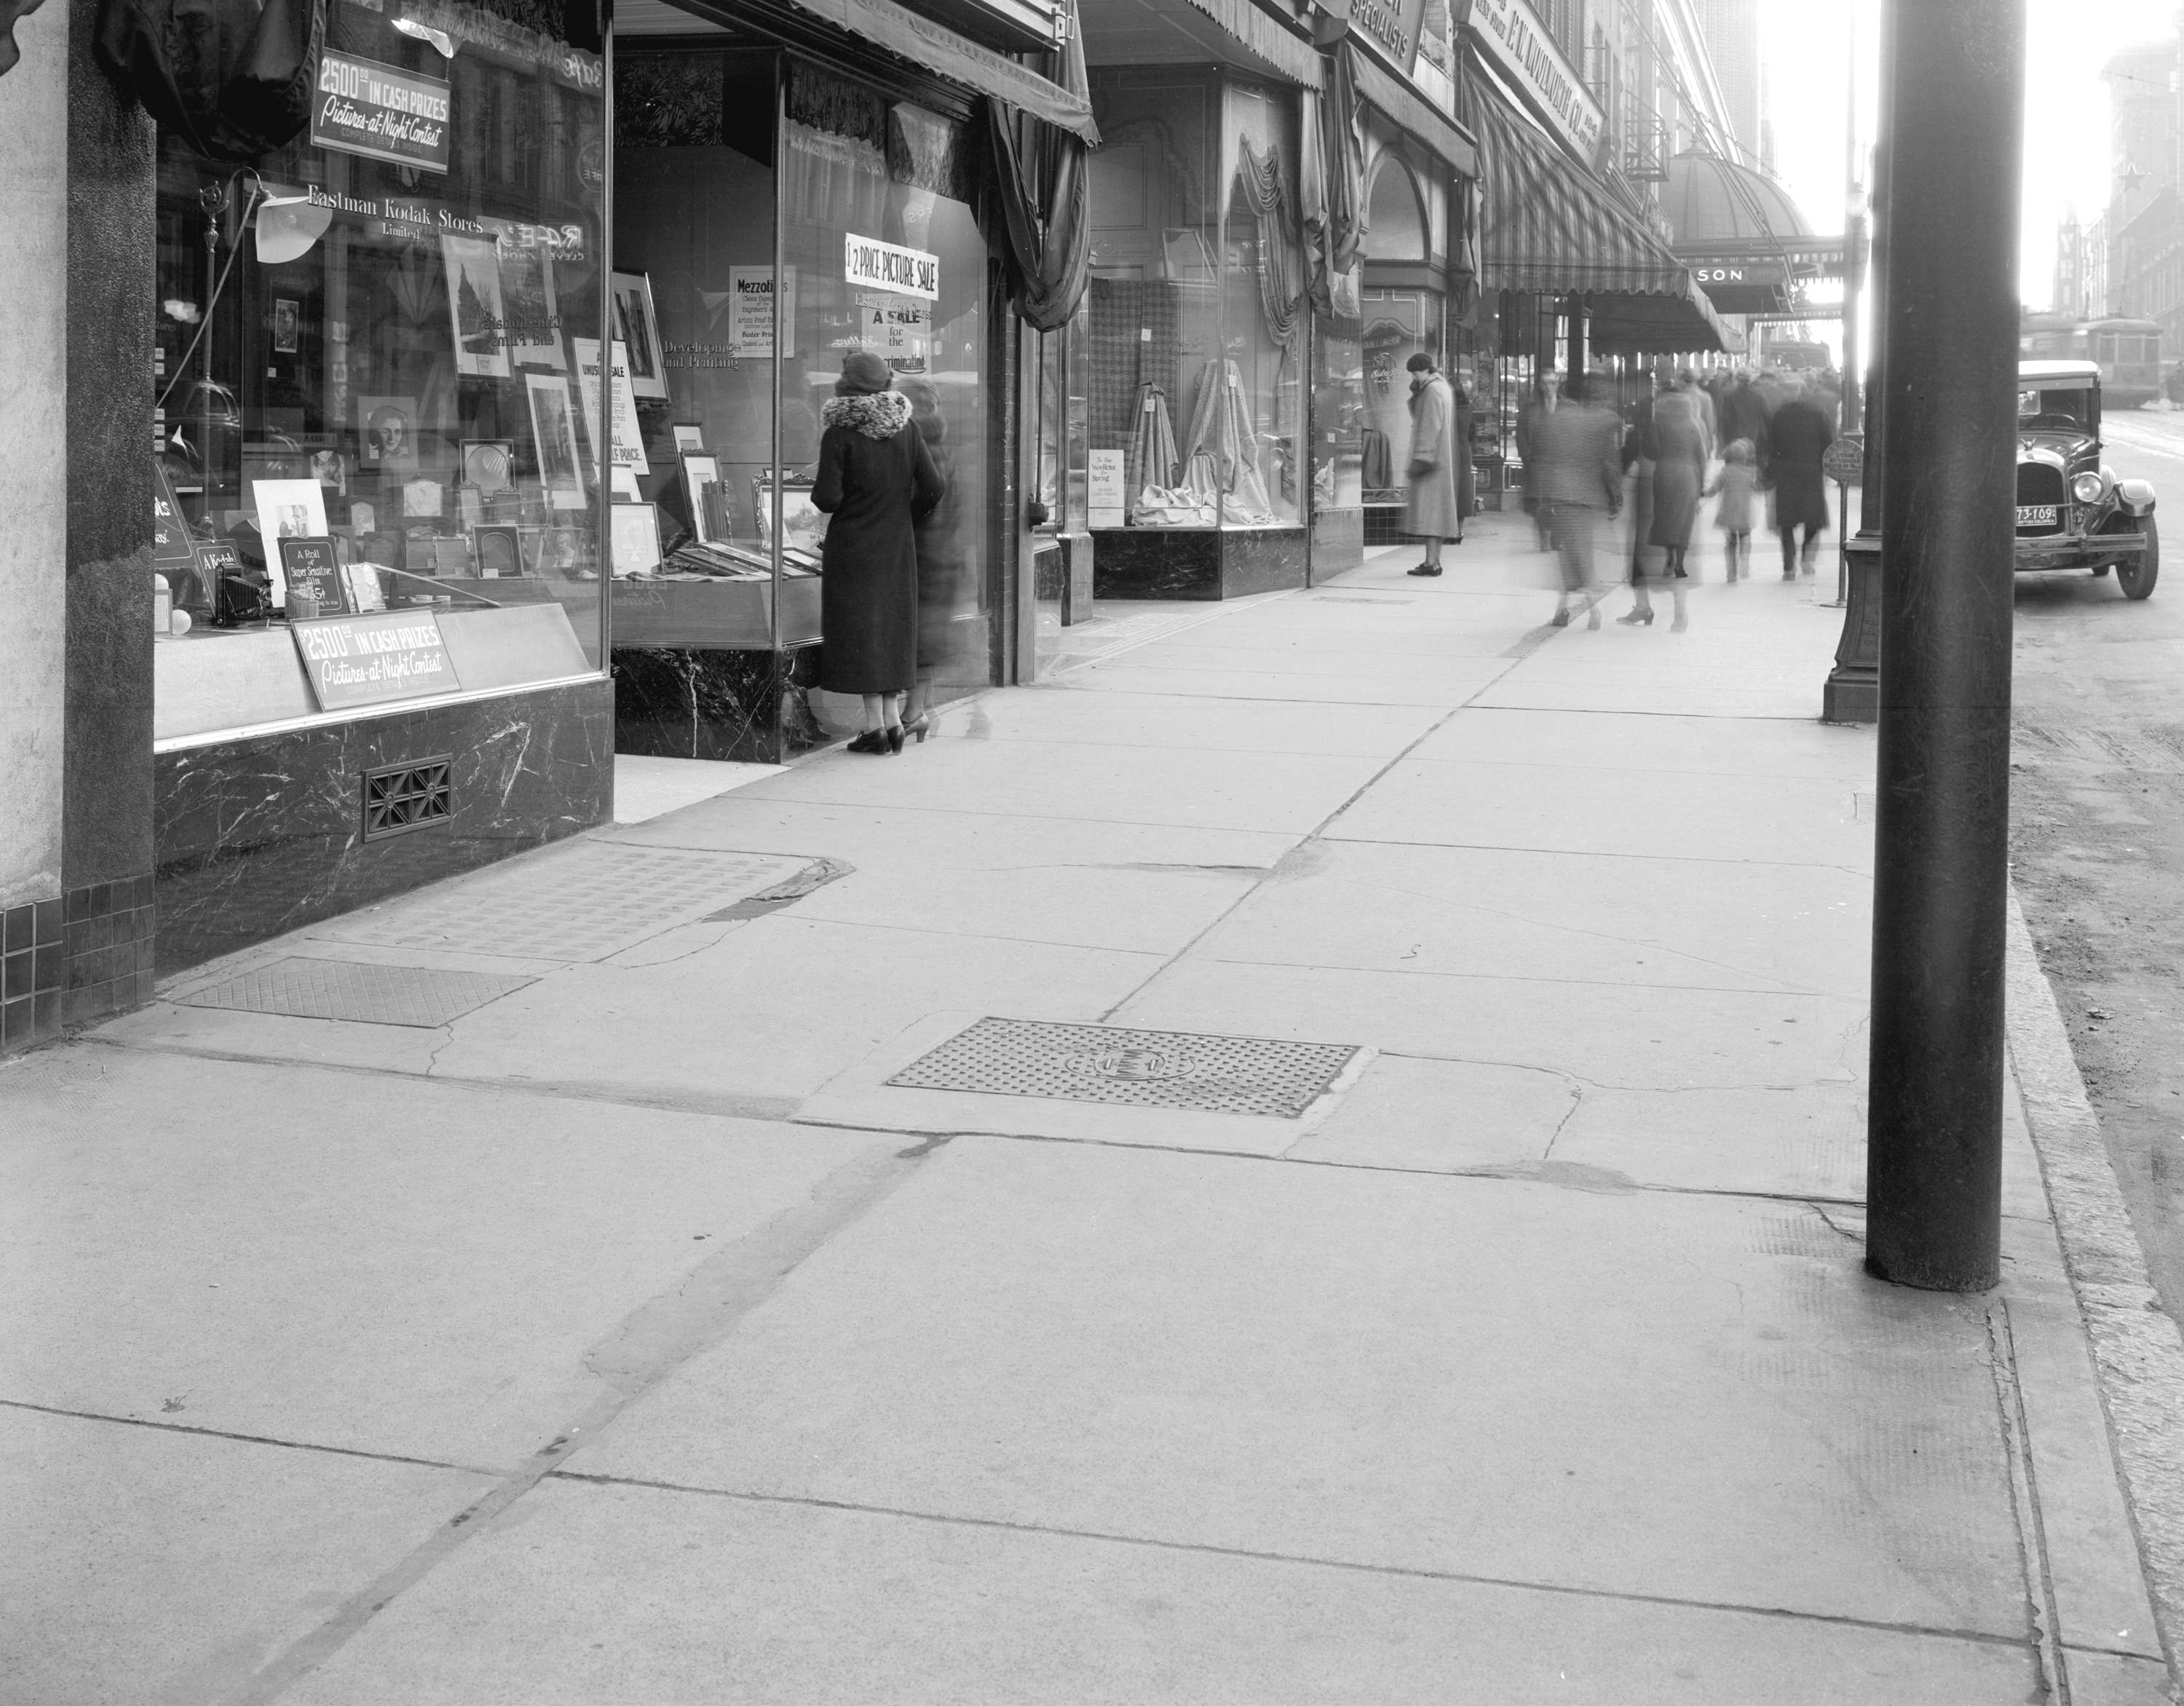 Sidewalk in front of [Eastman Kodak] store [at 610 Granville